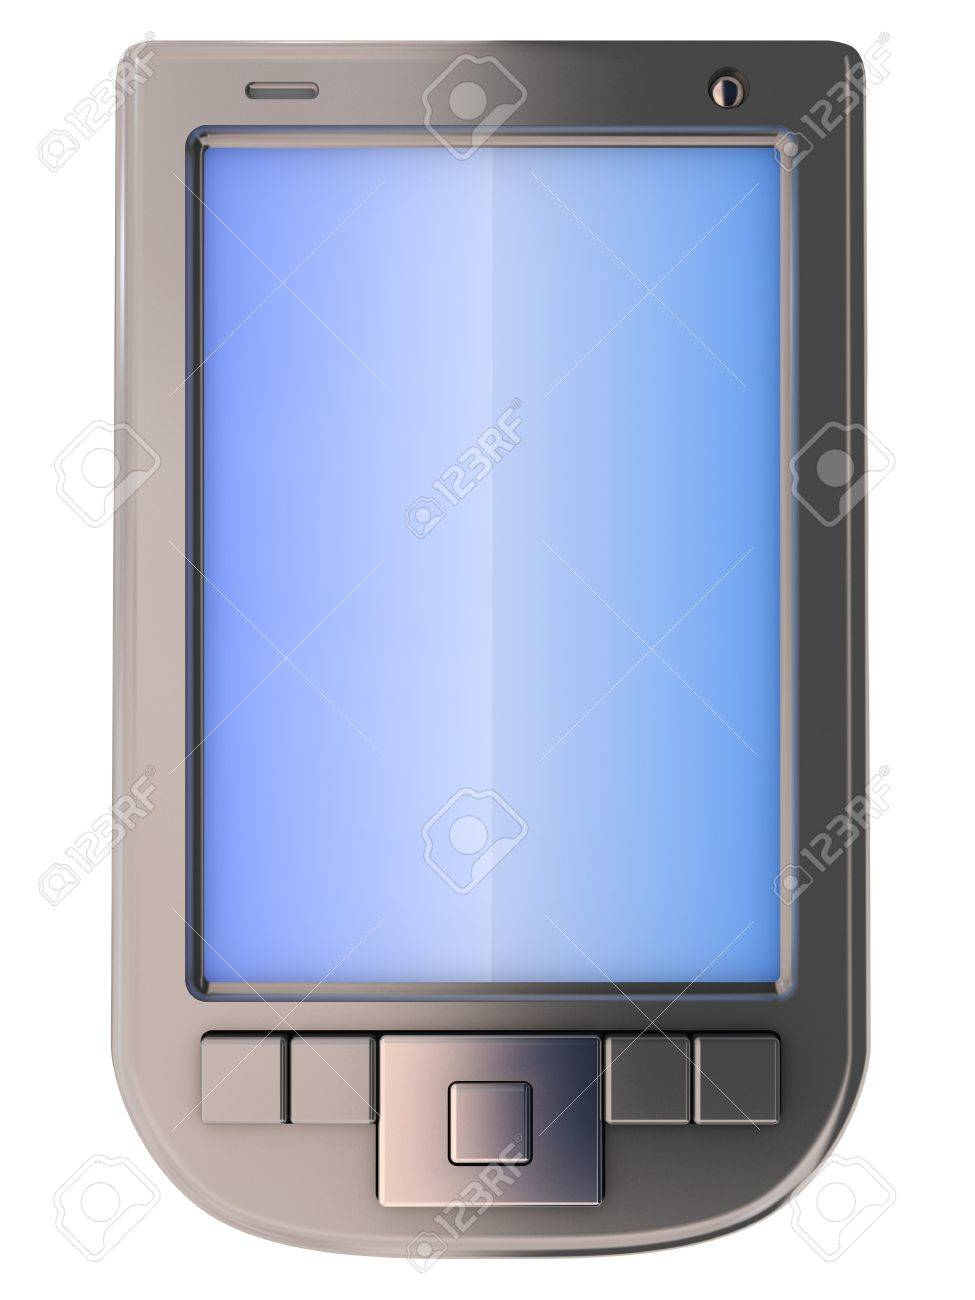 3d illustration of generic pda isolated over whte background Stock Illustration - 6253312